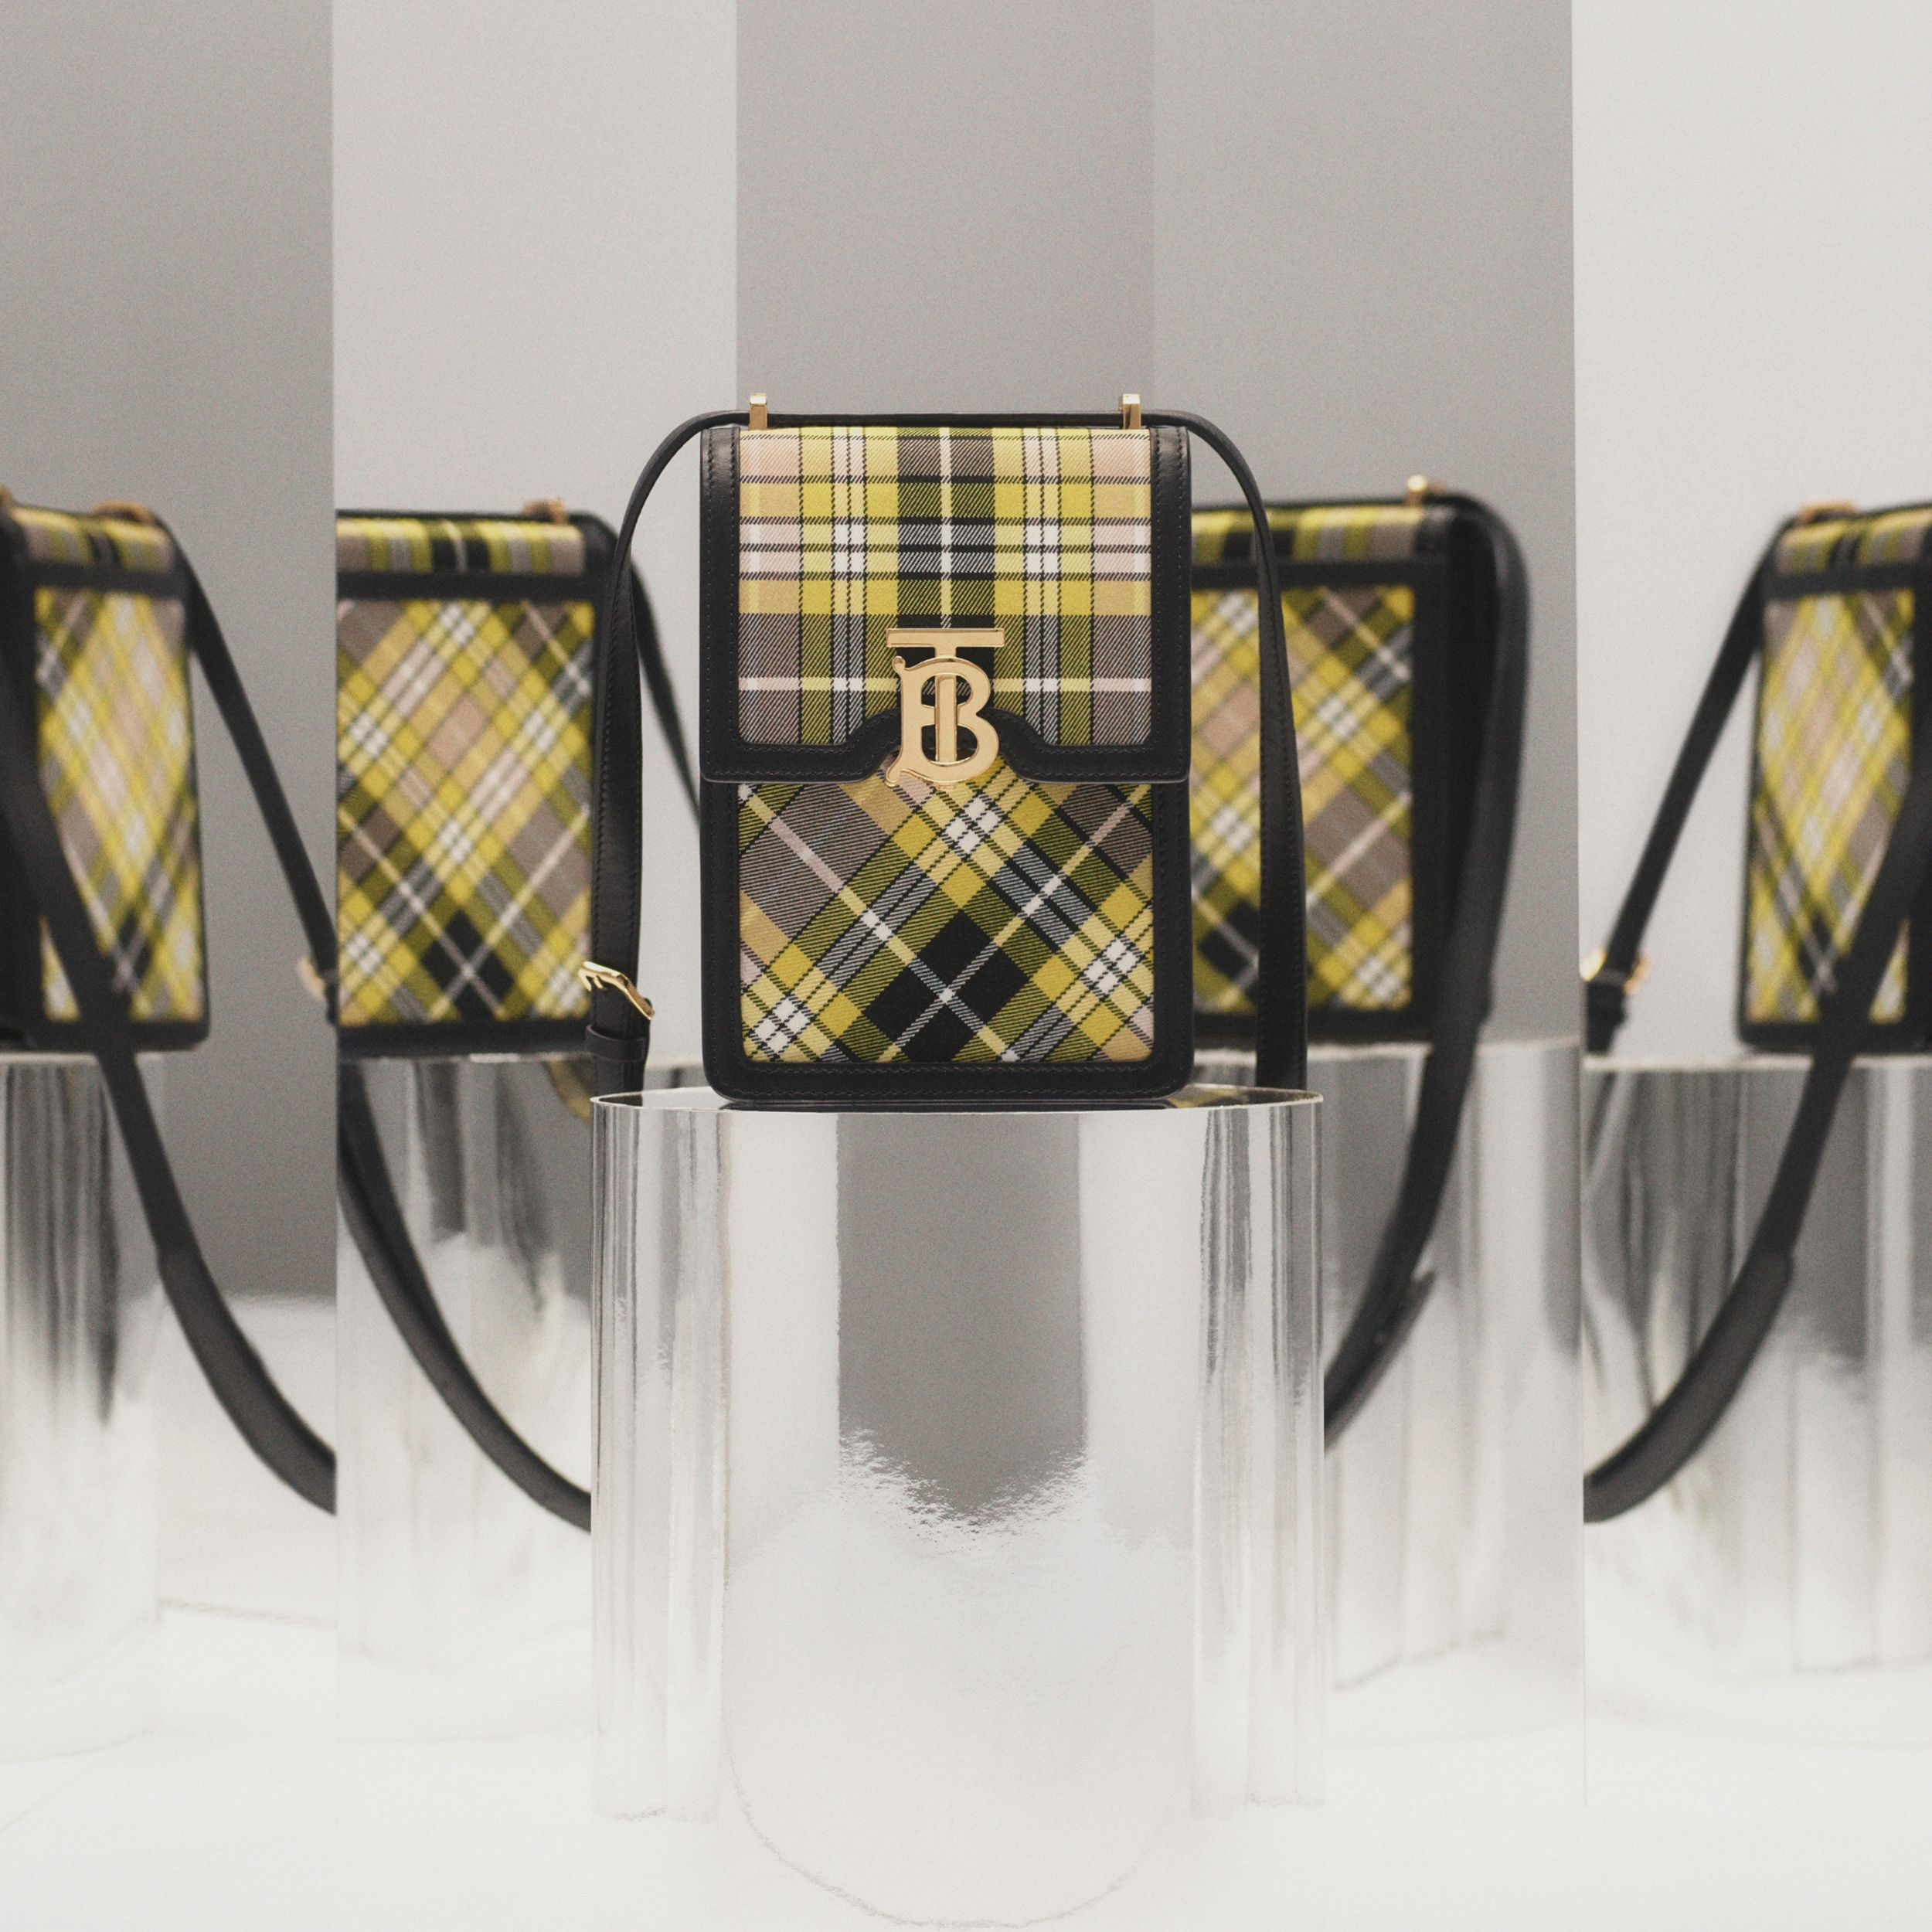 Tartan Cotton and Leather Robin Bag in Marigold Yellow - Women | Burberry - 2